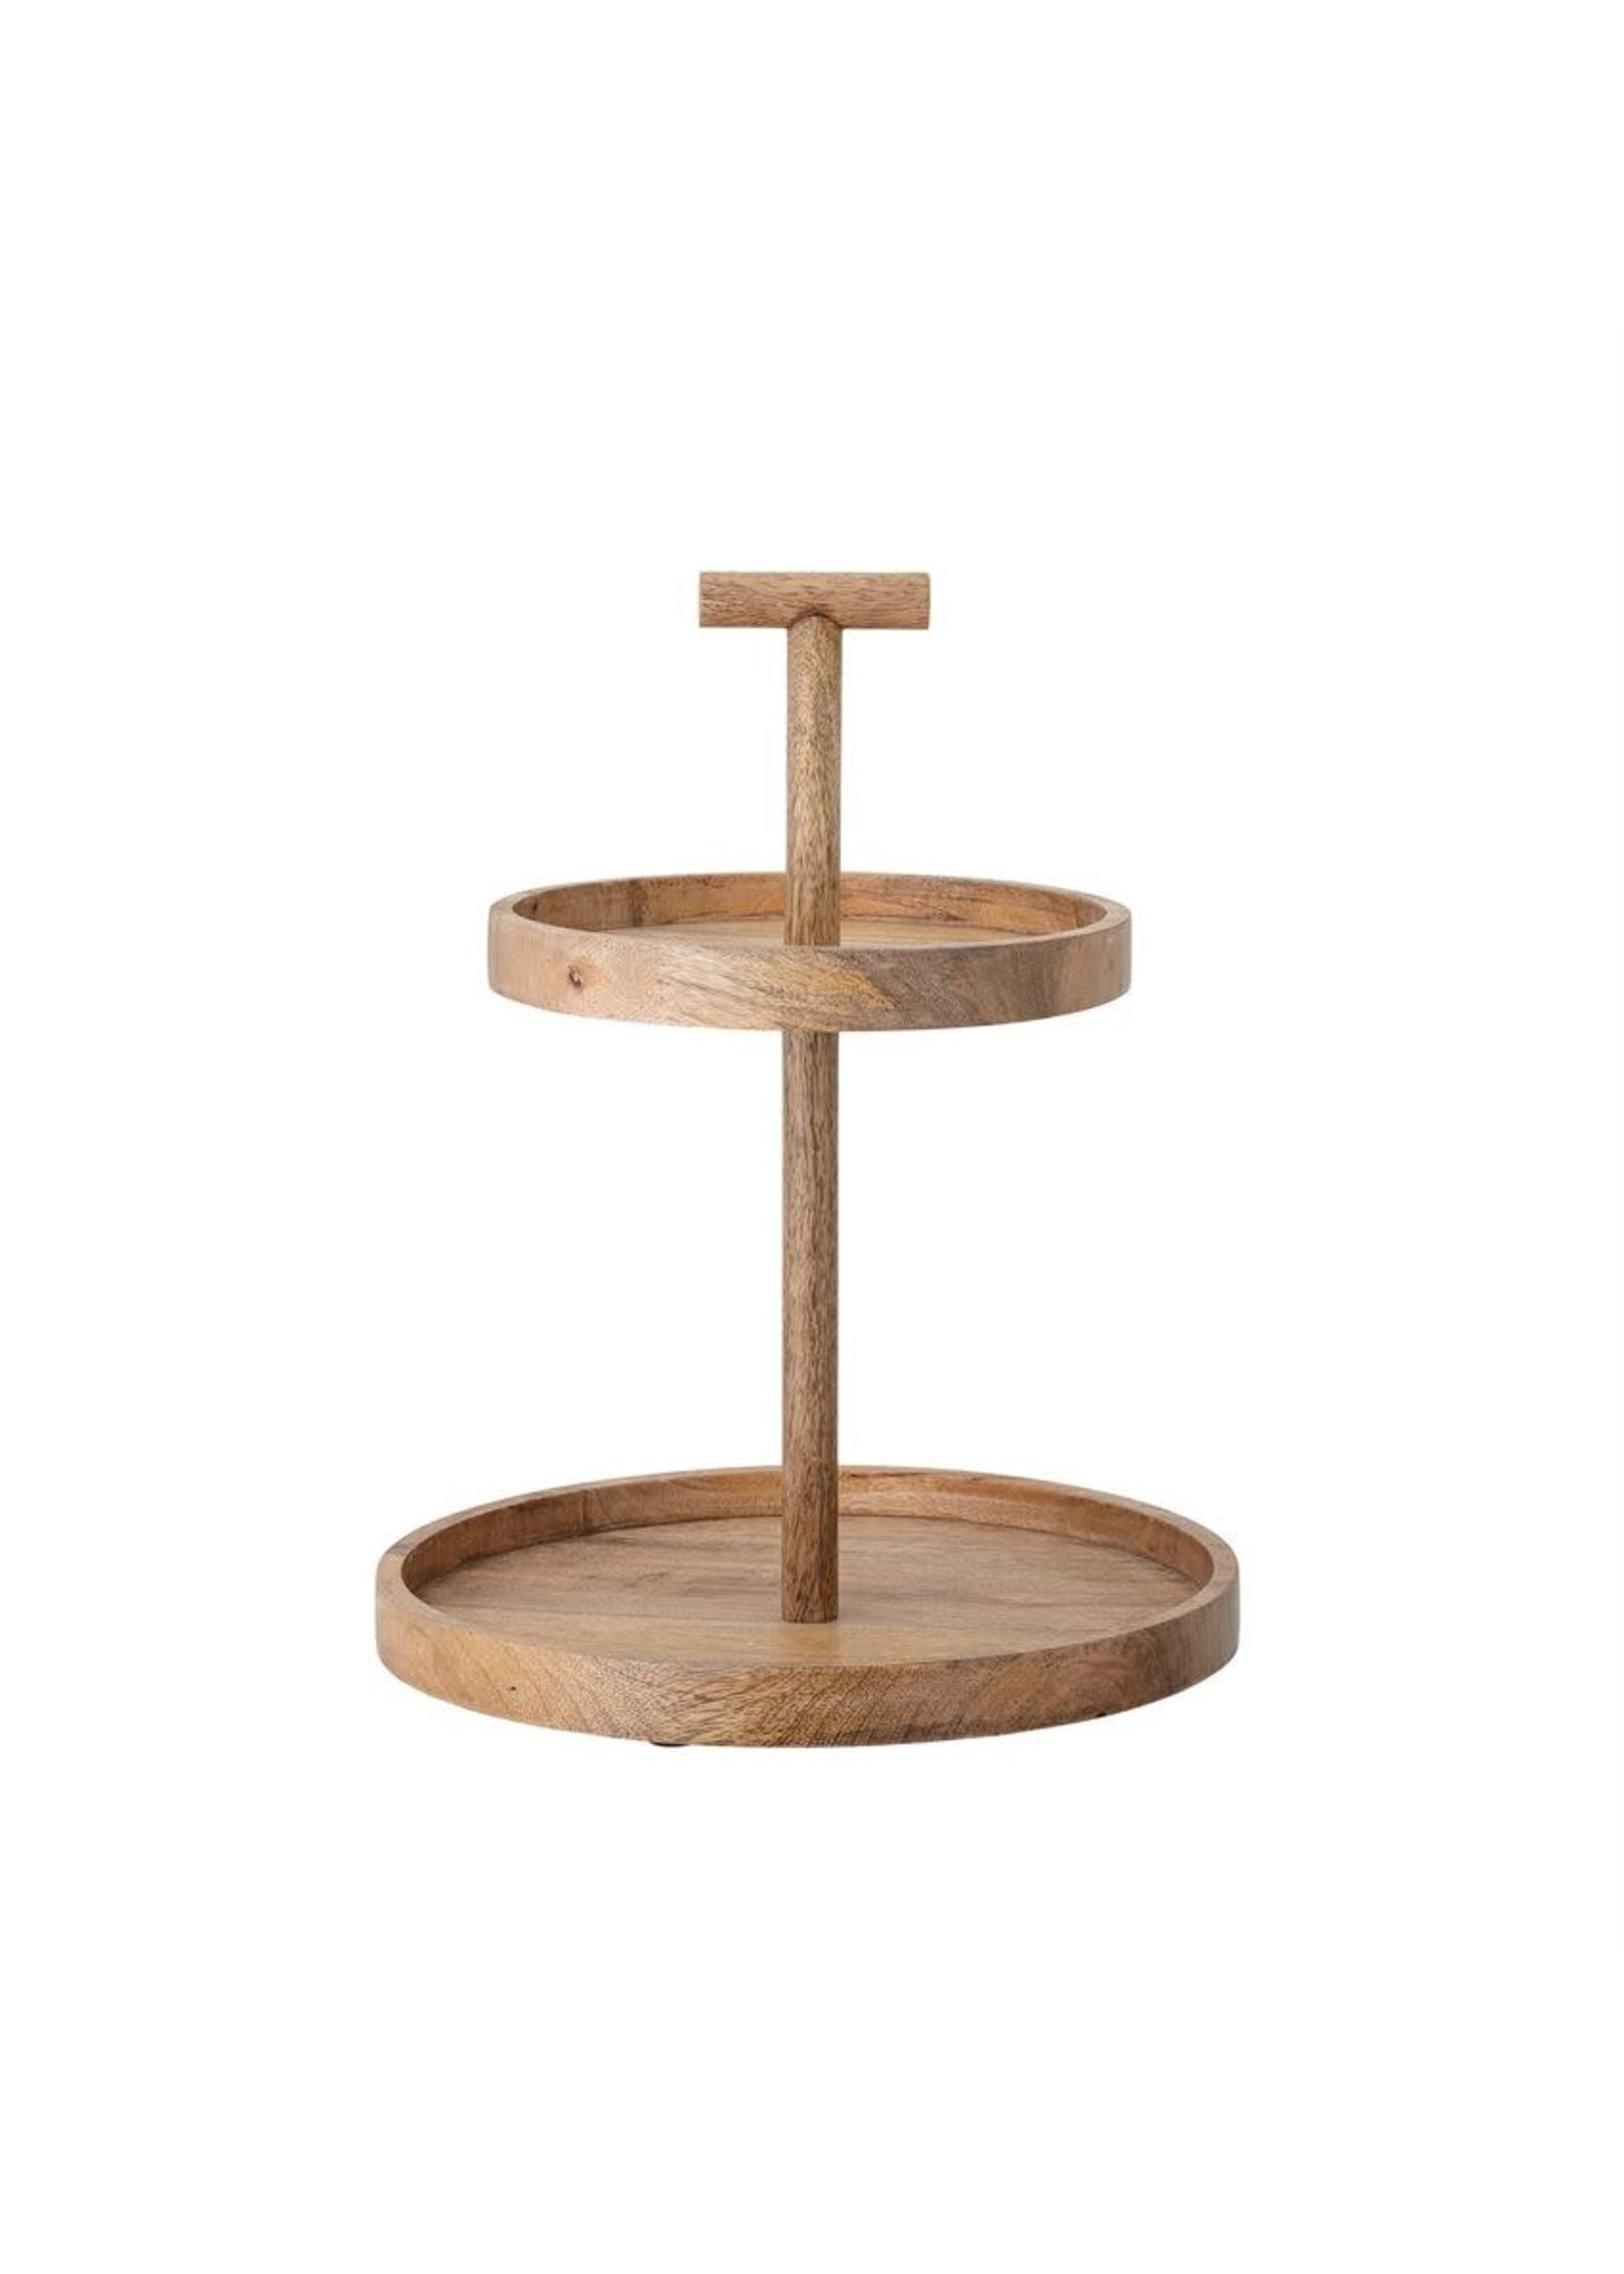 MANGO WOOD TWO TIERED TRAY